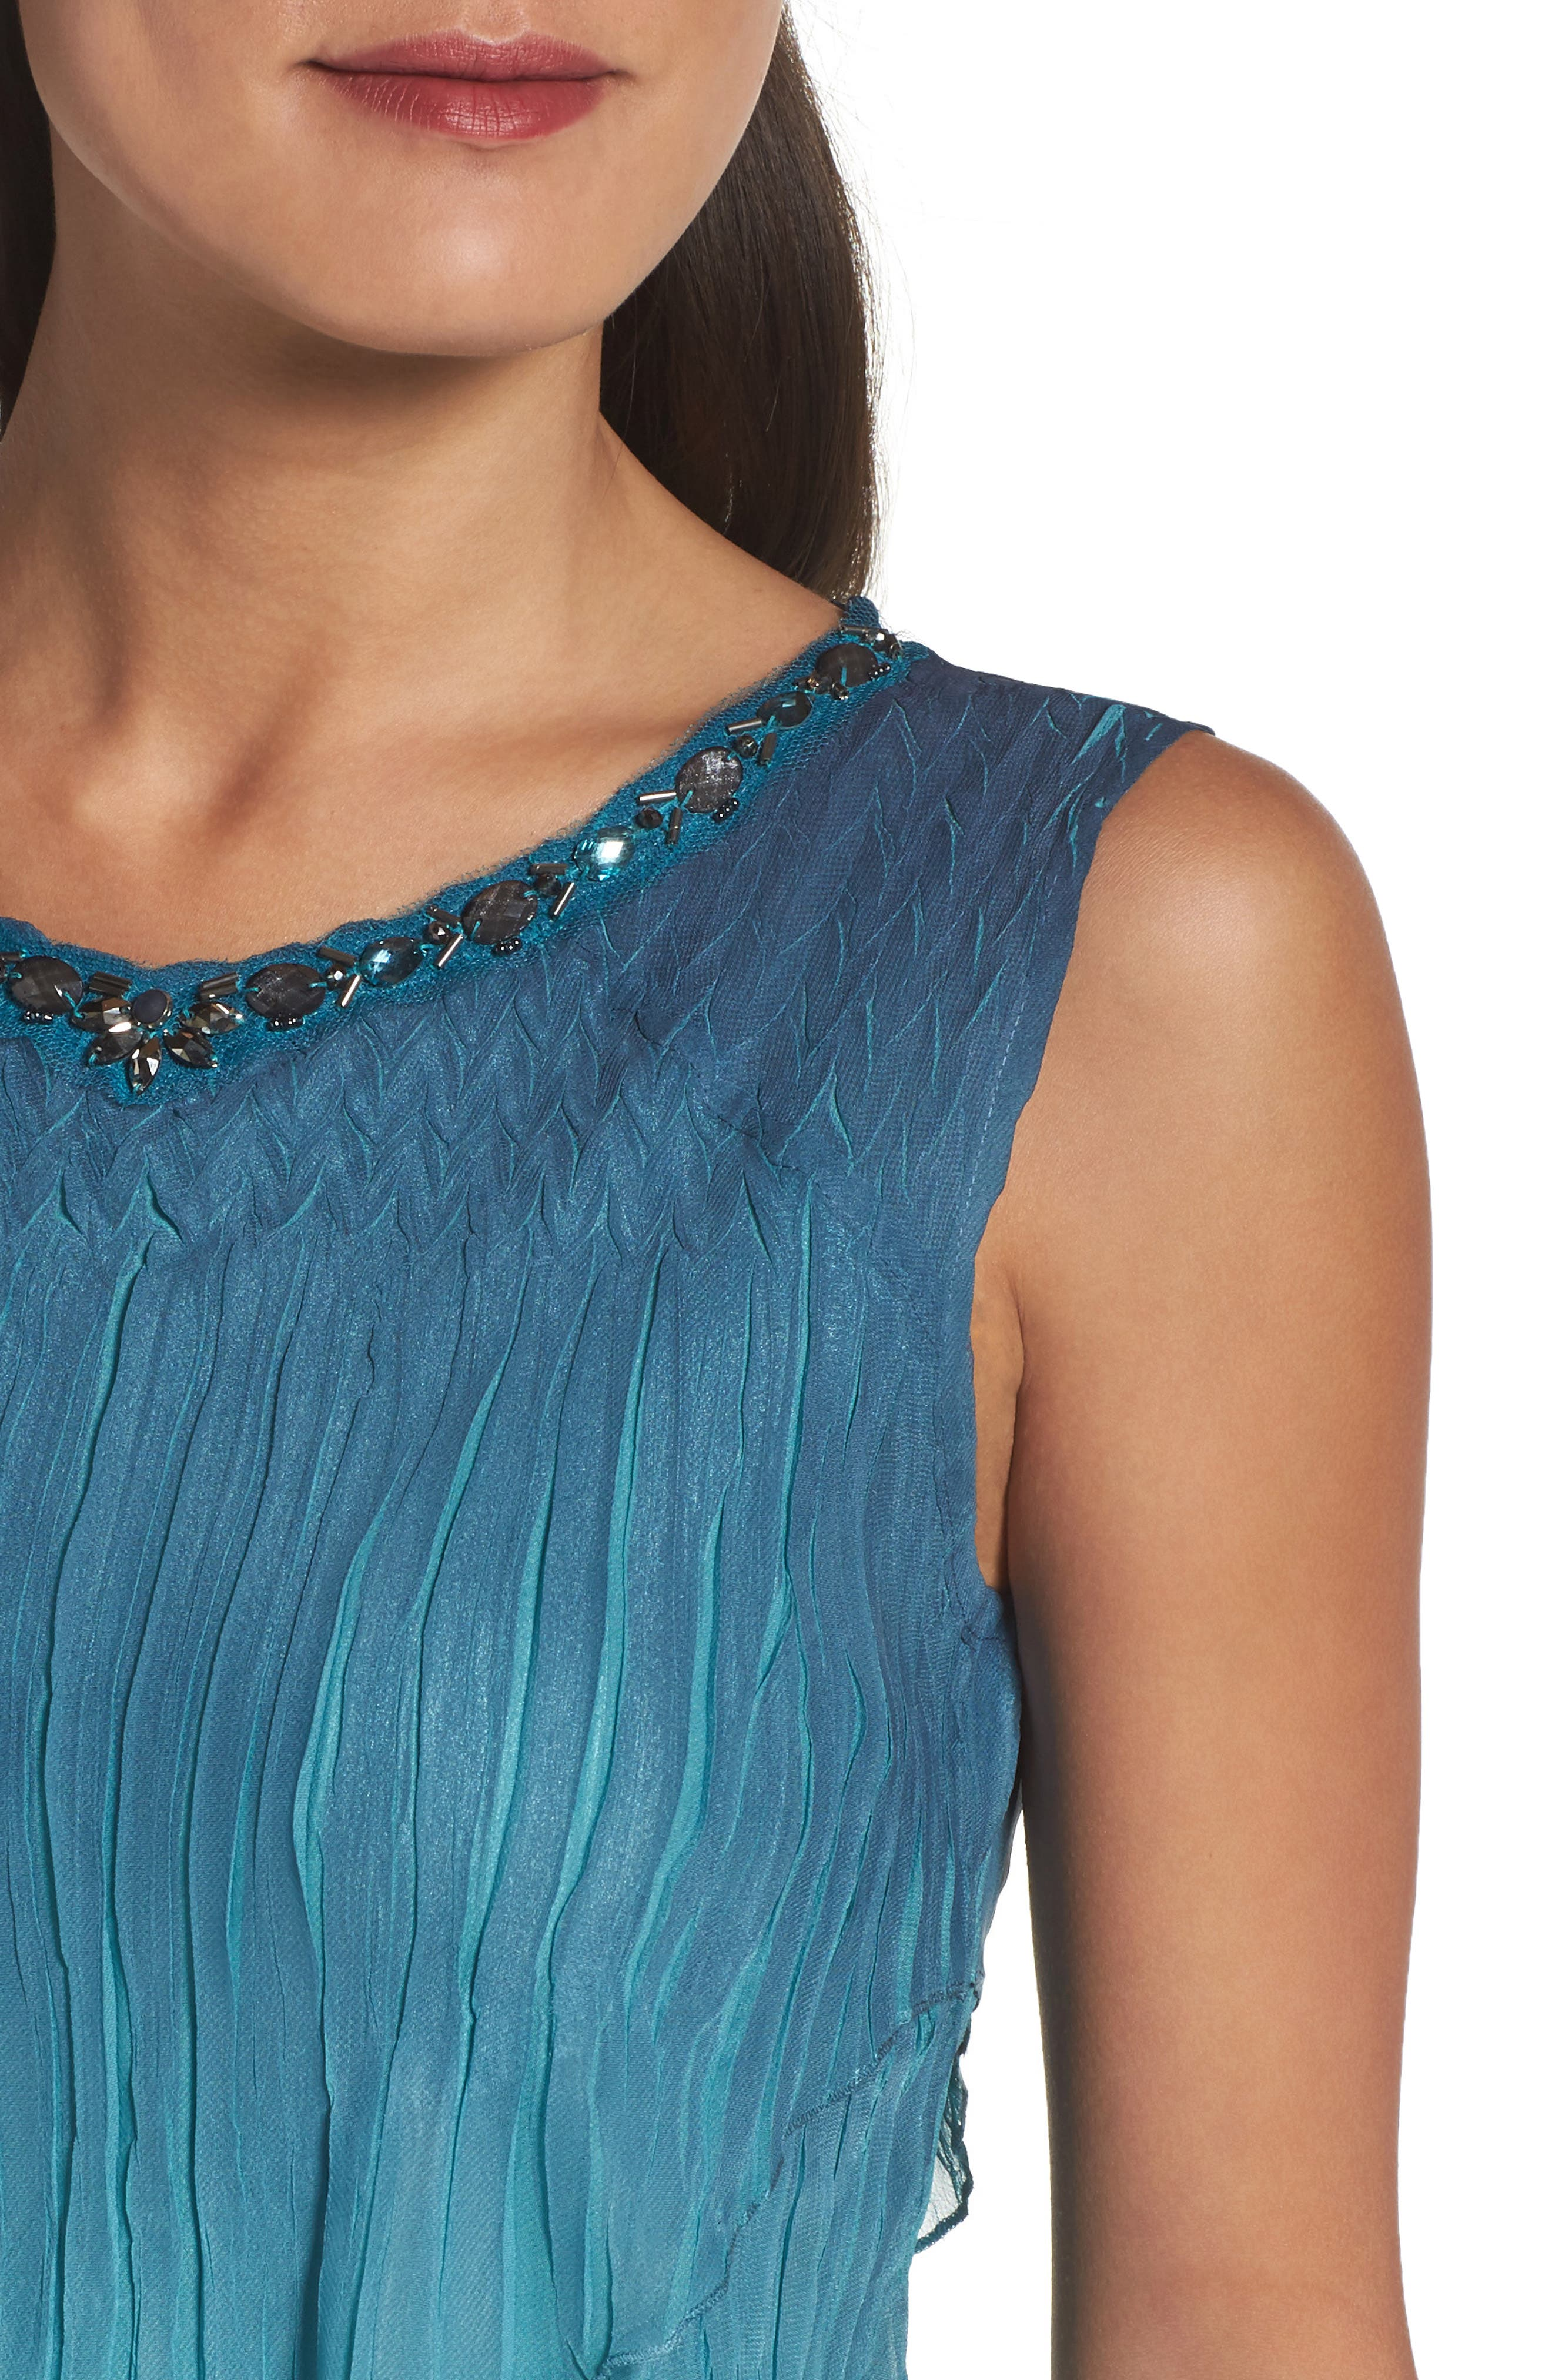 Tiered Chiffon Shift Dress with Shawl,                             Alternate thumbnail 4, color,                             Marine Night Ombre